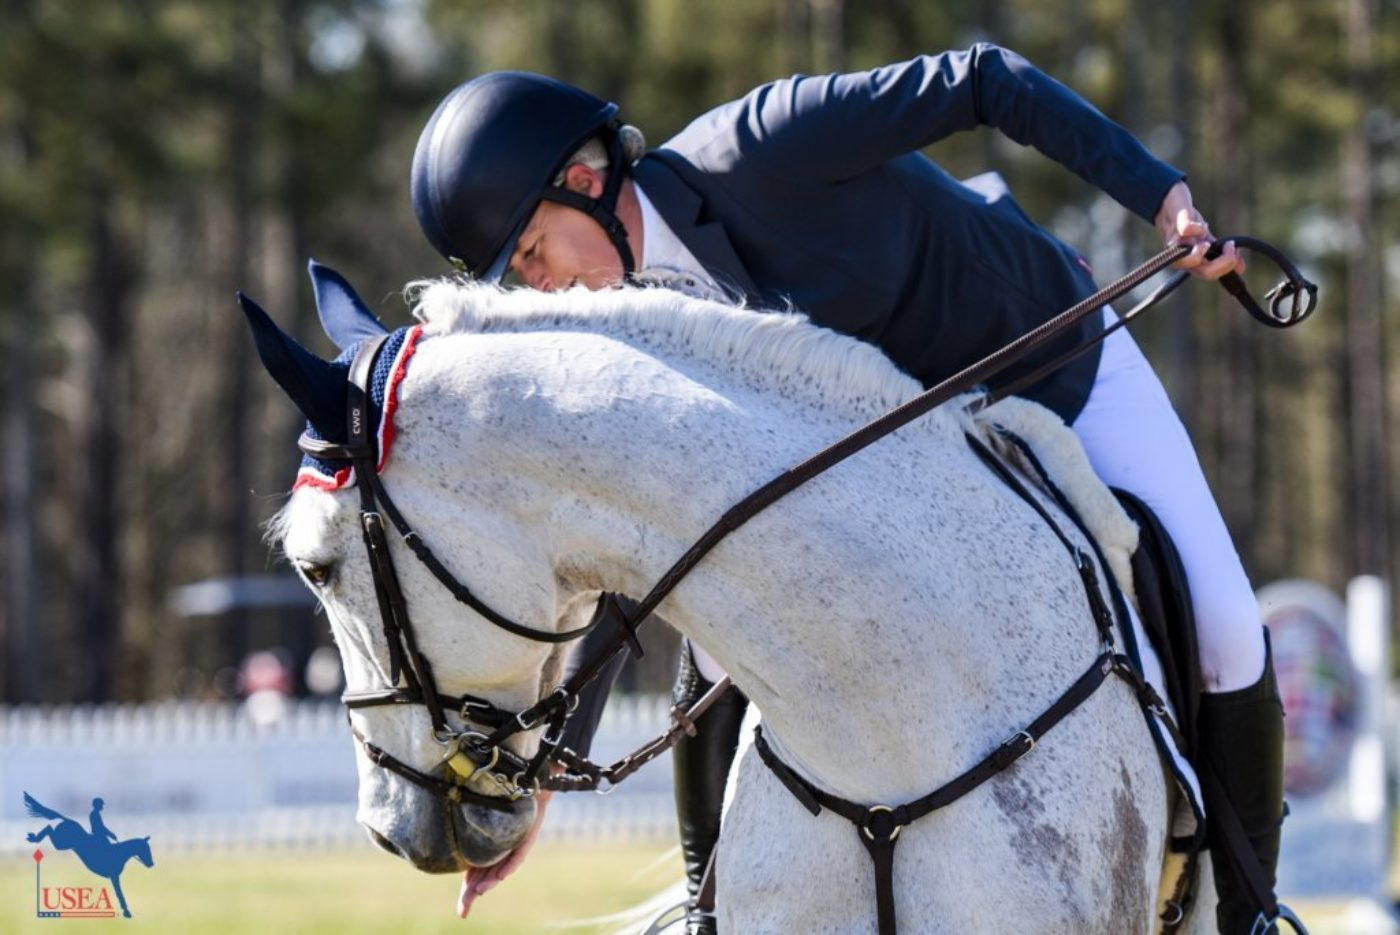 Rubens D'Ysieux gets a cookie before exiting the show jumping arena. This unicorn has Sara Kozumplik Murphy well trained! USEA/Leslie Mintz Photo.